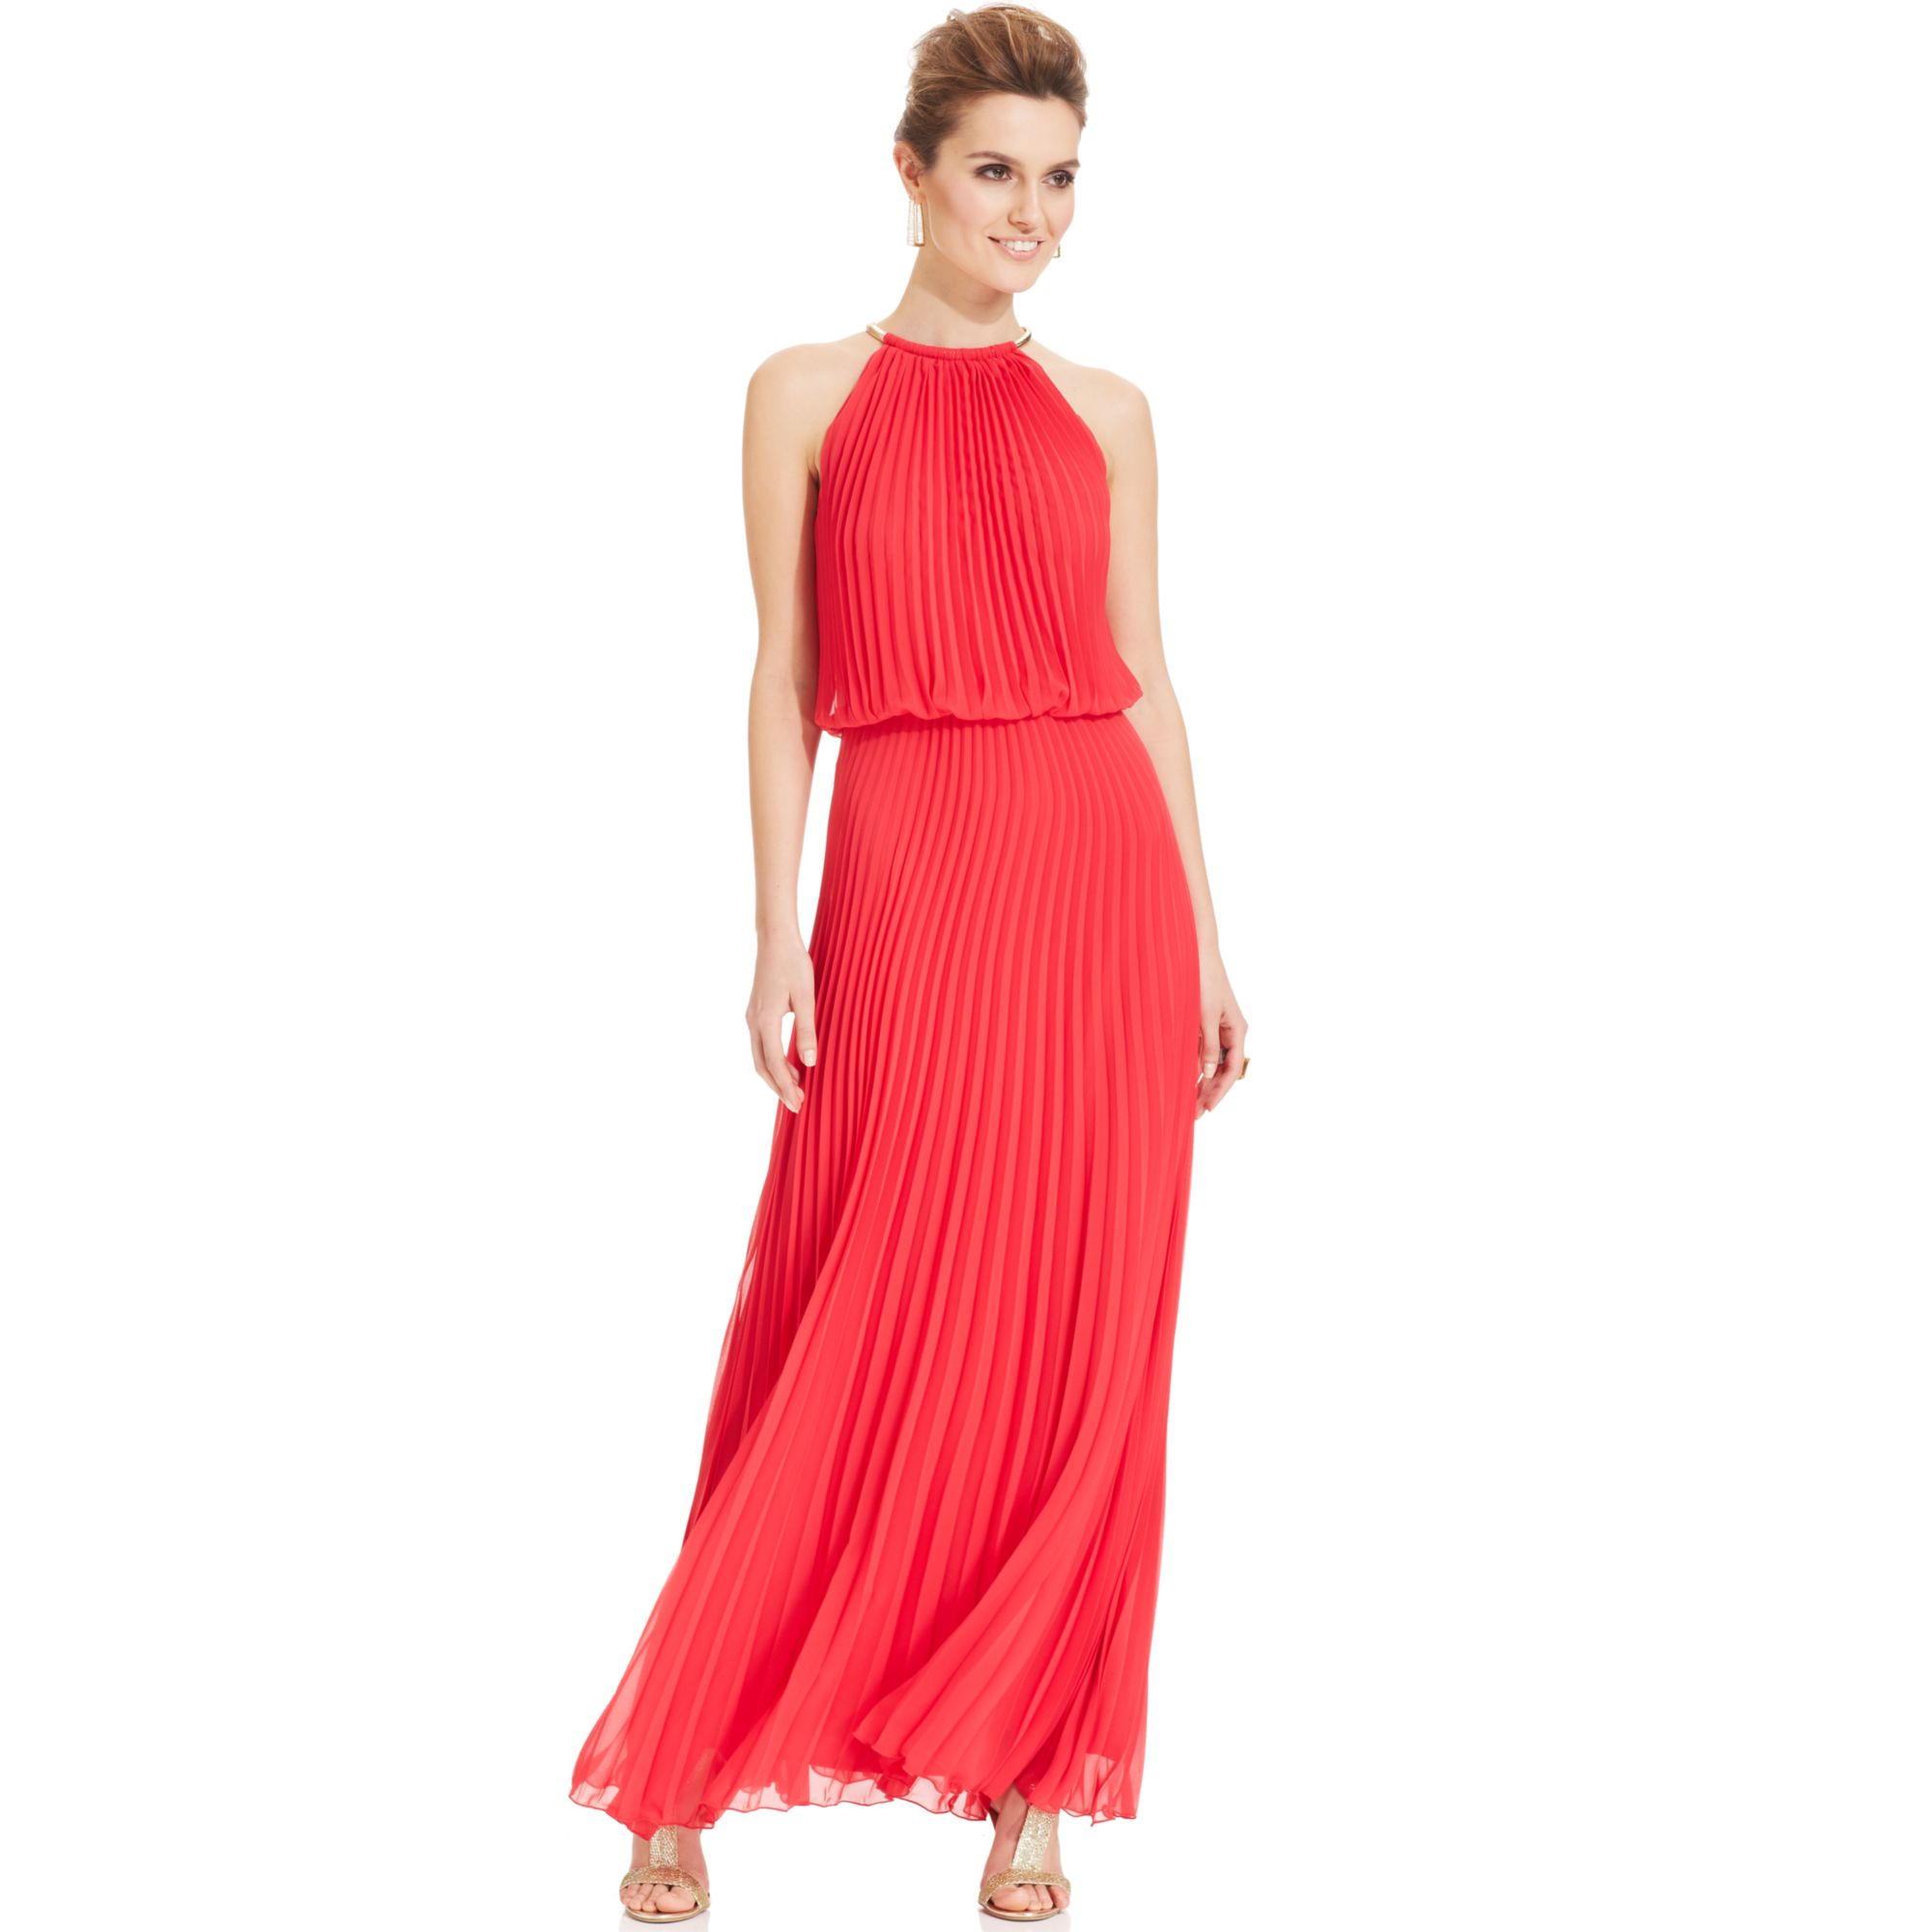 4b5c4252f3 Red Formal Dresses Nordstrom